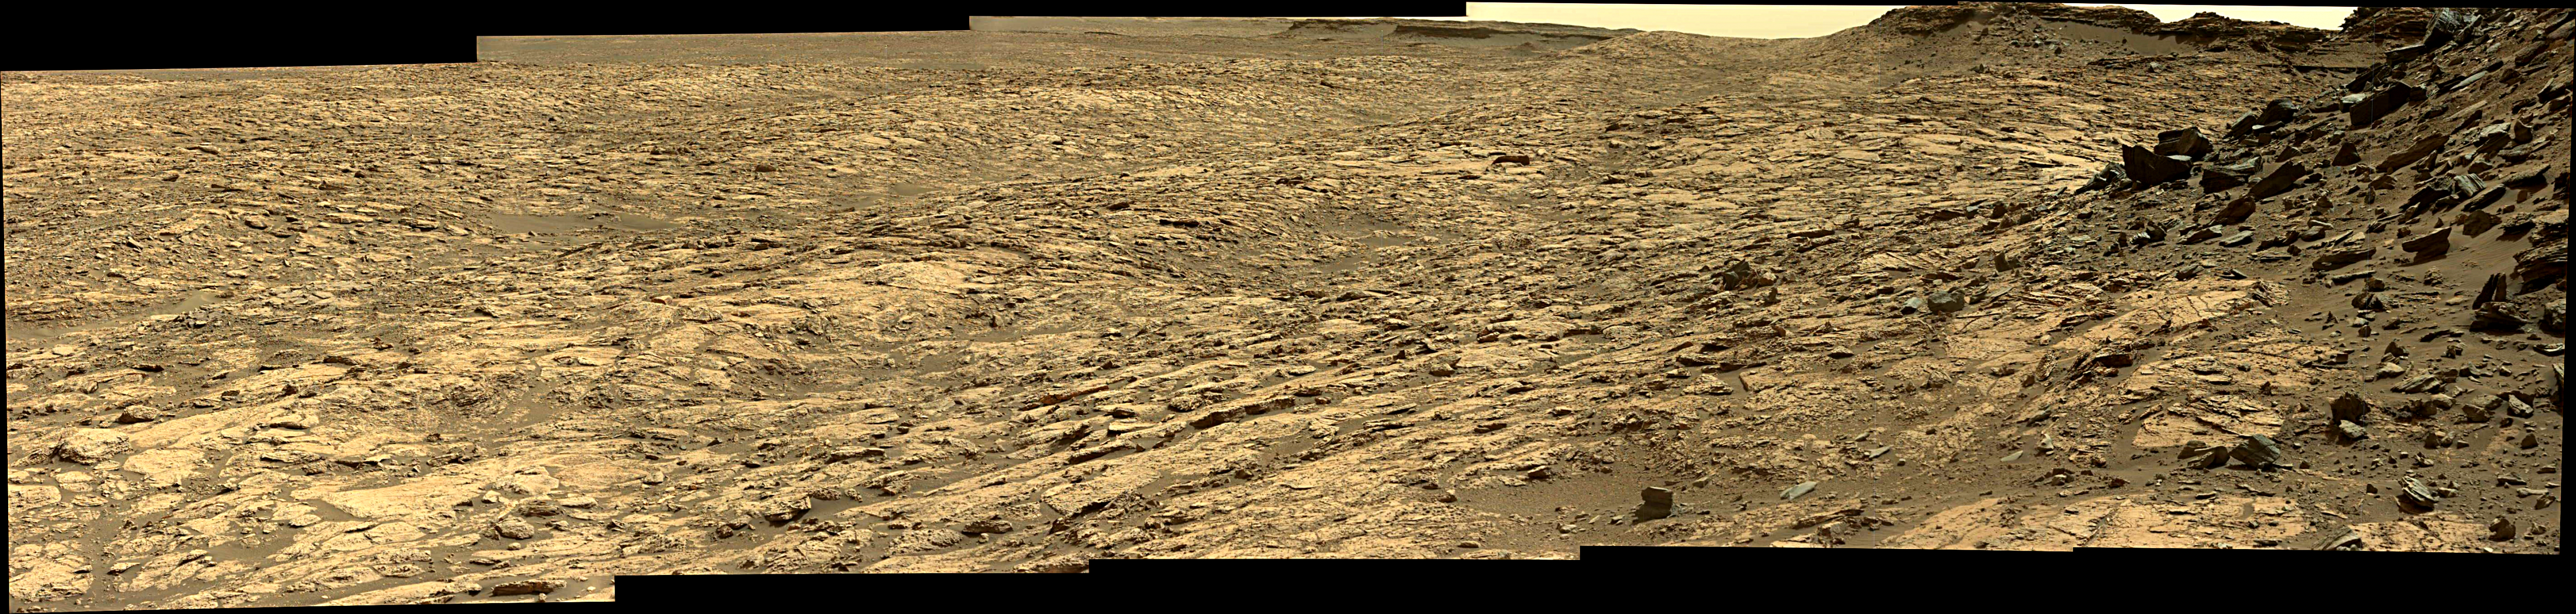 panoramic-curiosity-rover-view-1e-sol-1452-was-life-on-mars